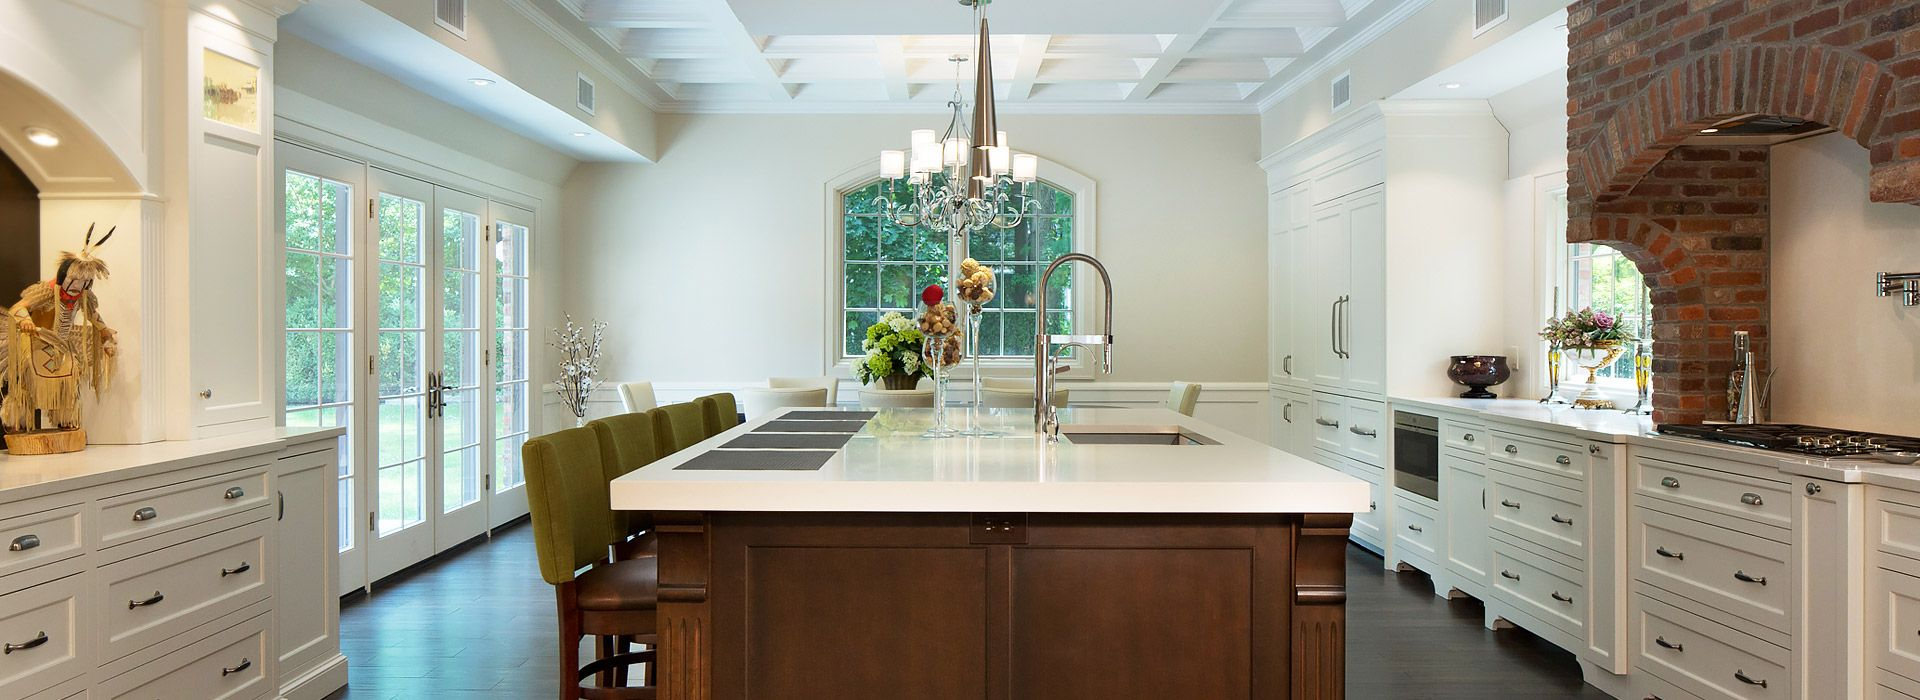 Rutt Handcrafted Cabinetry Kitchen Cabinets Traditional